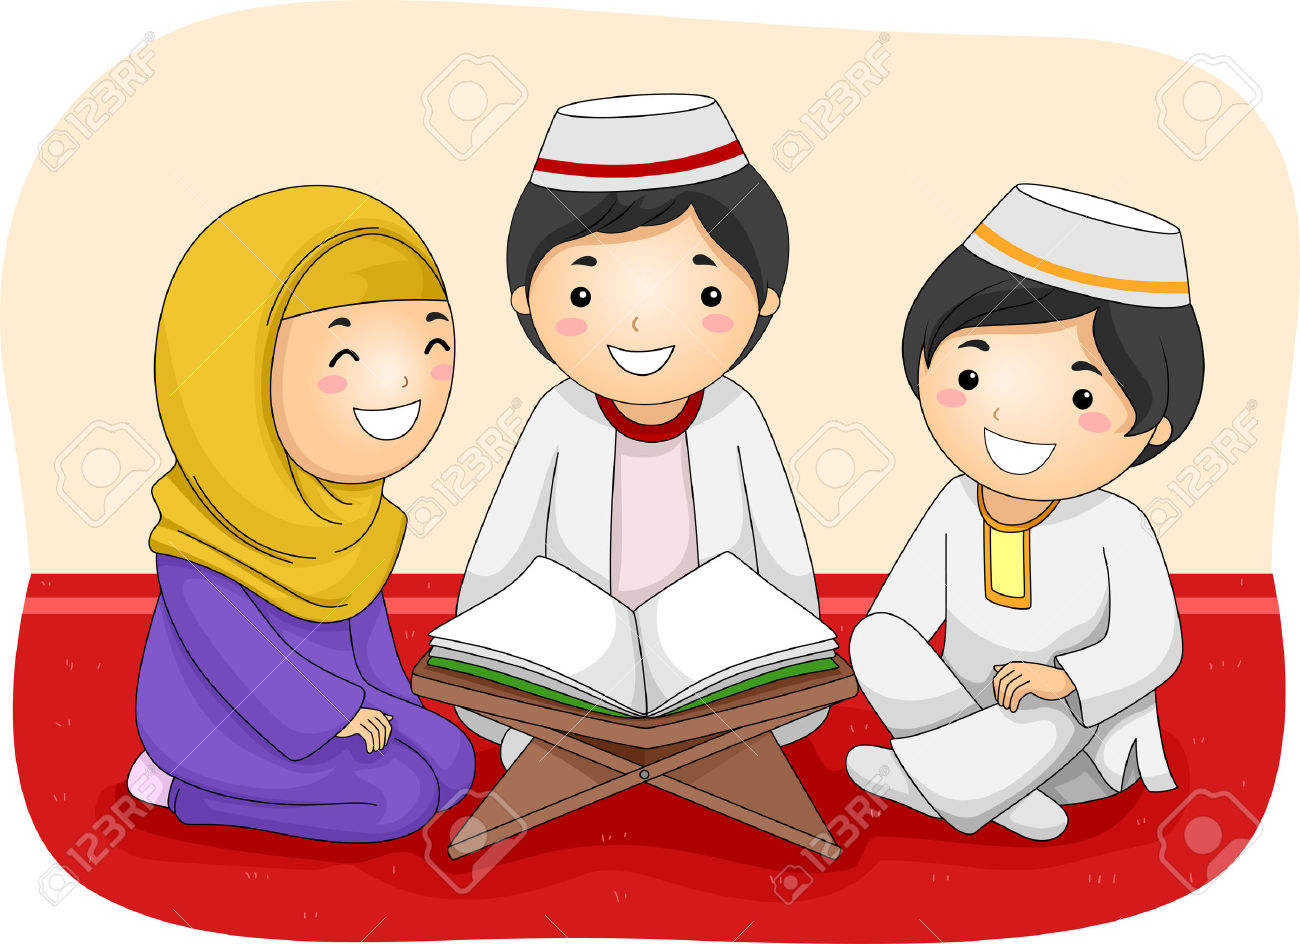 Muslim Children Clipart 20 Free Cliparts  Download Images -5007